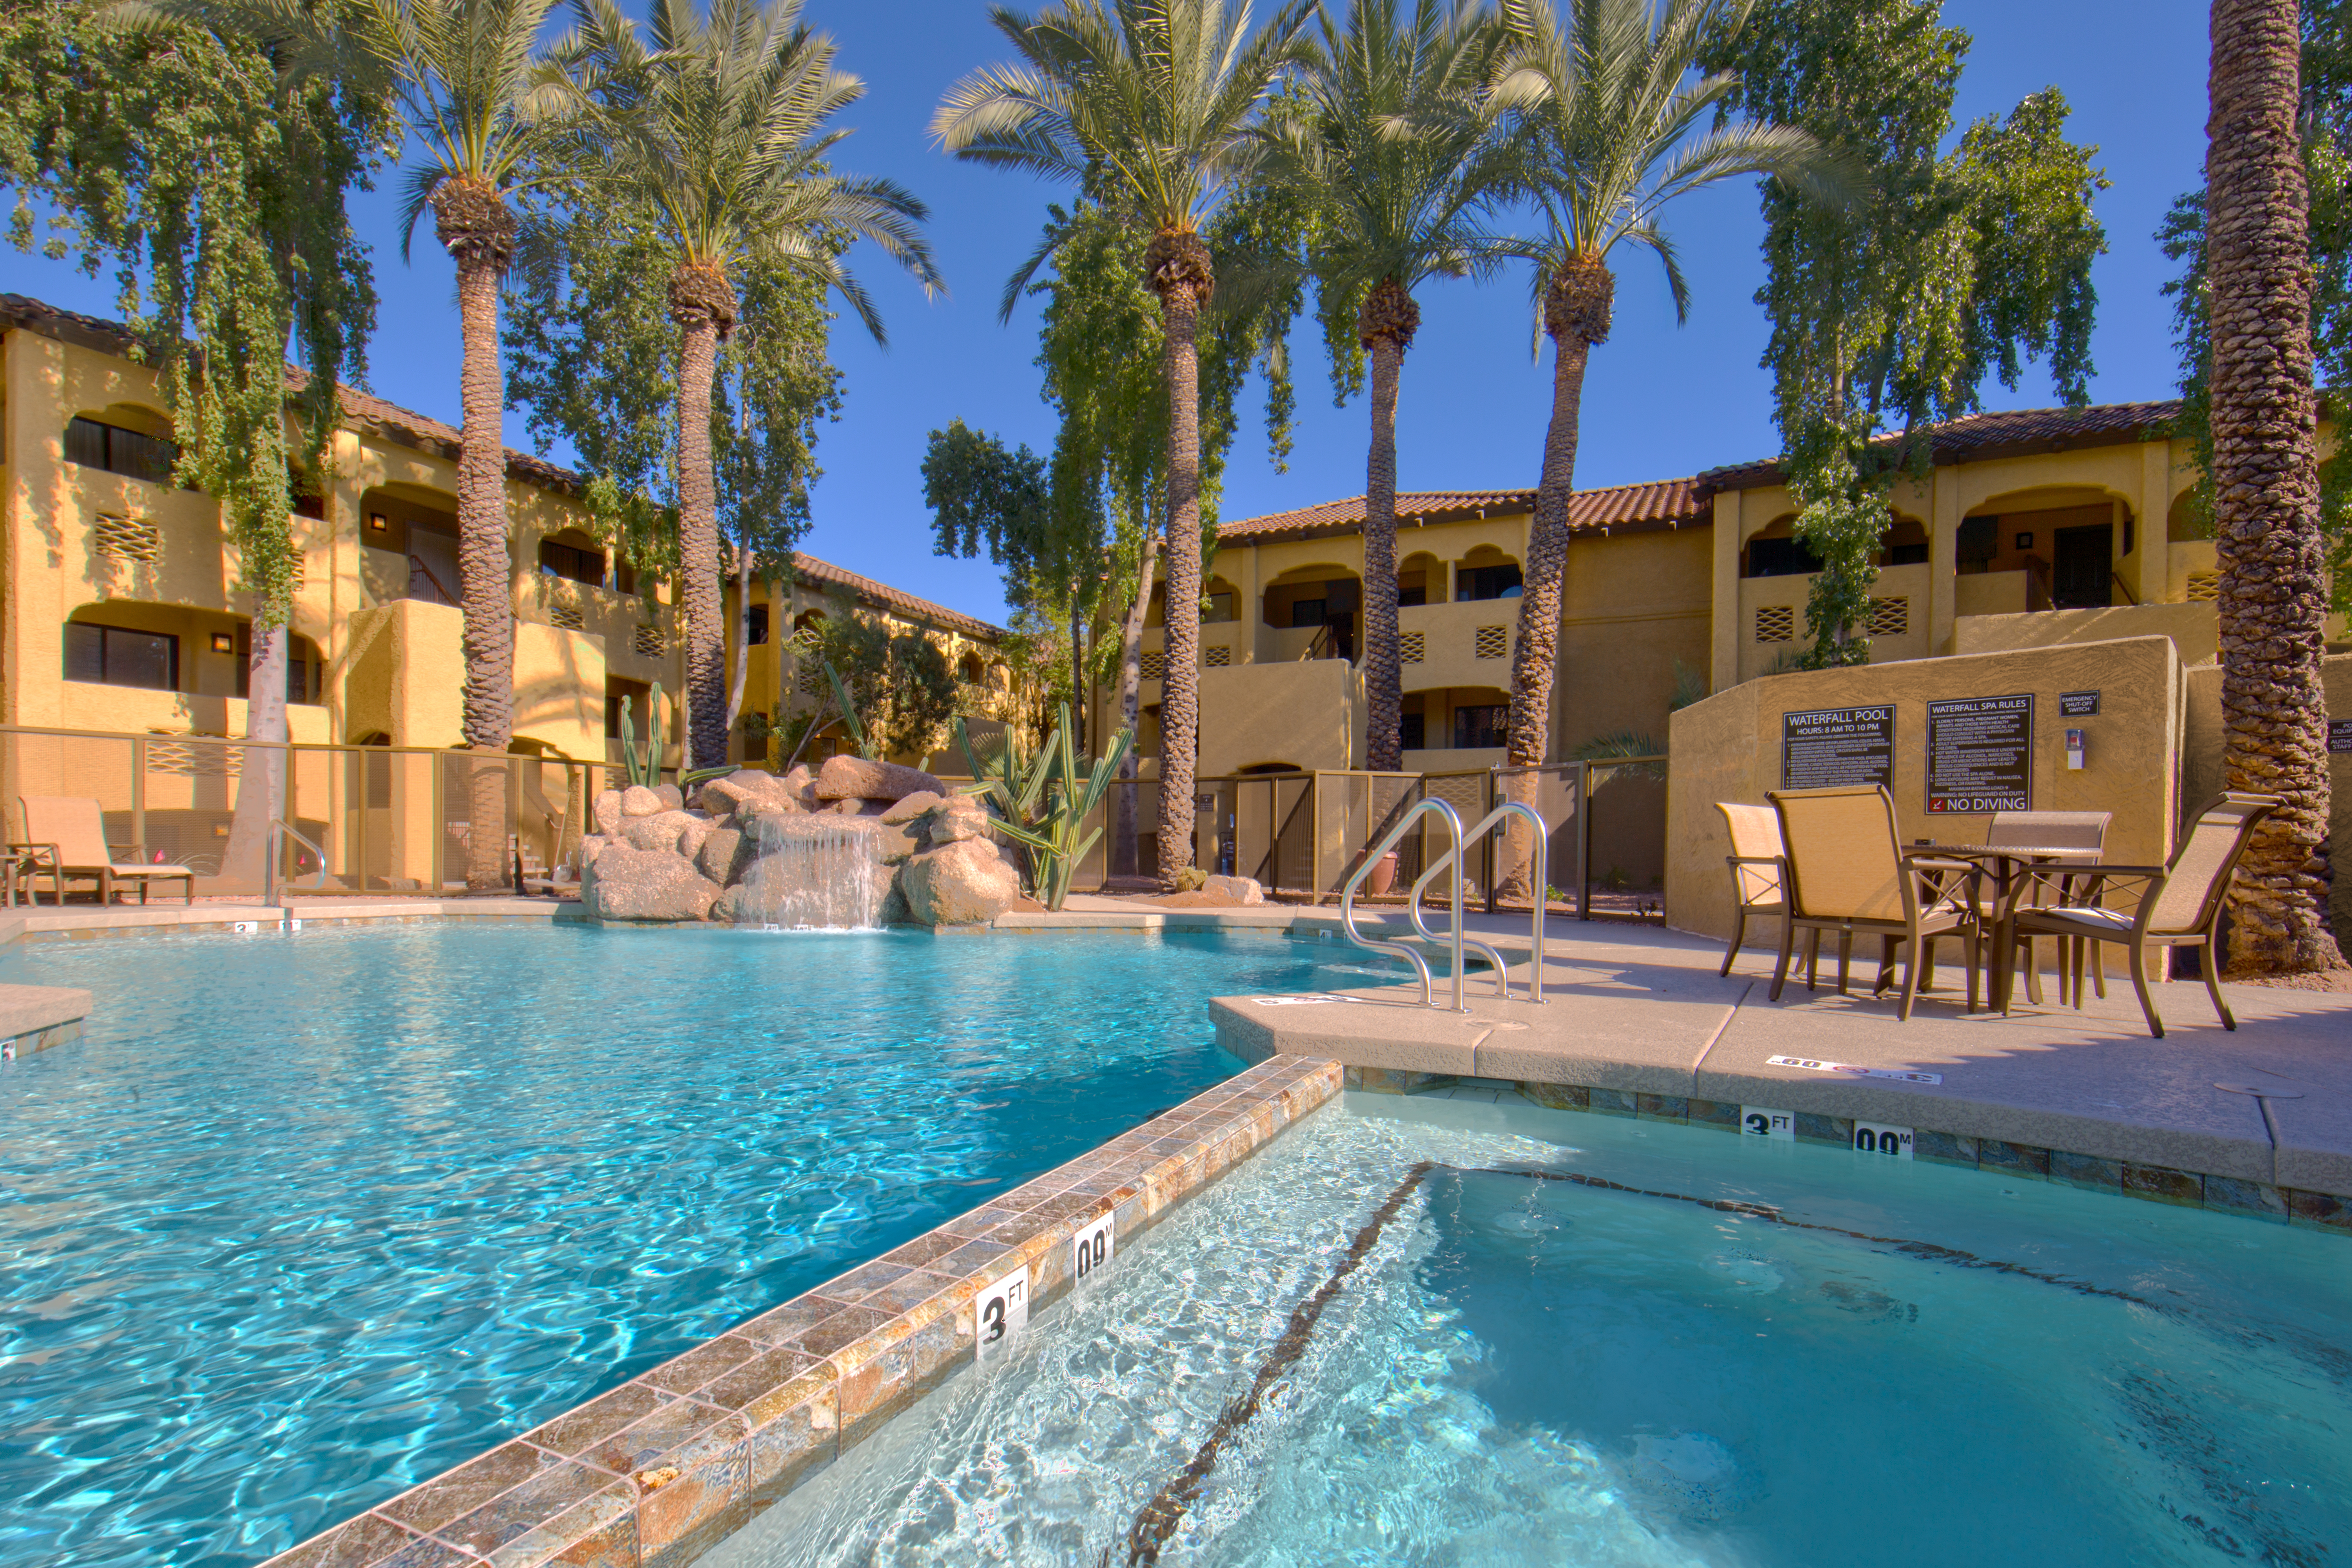 phoenix hotels, resorts, dude ranches, and bed & breakfasts